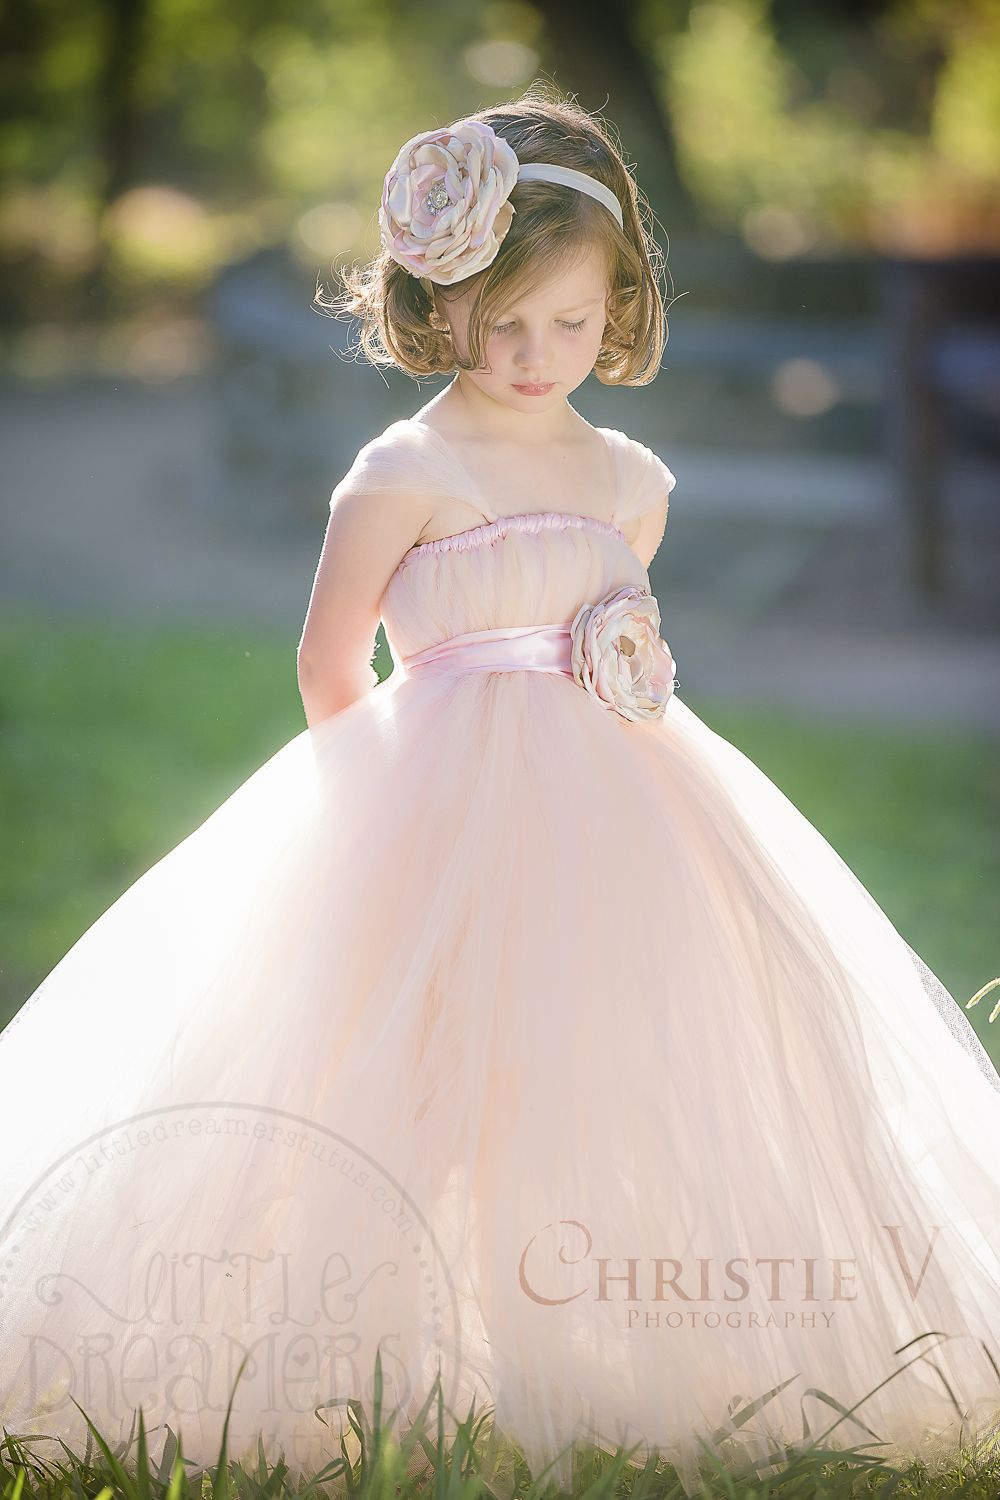 d96a0bfe186 vintage flower girl dresses - Google Search